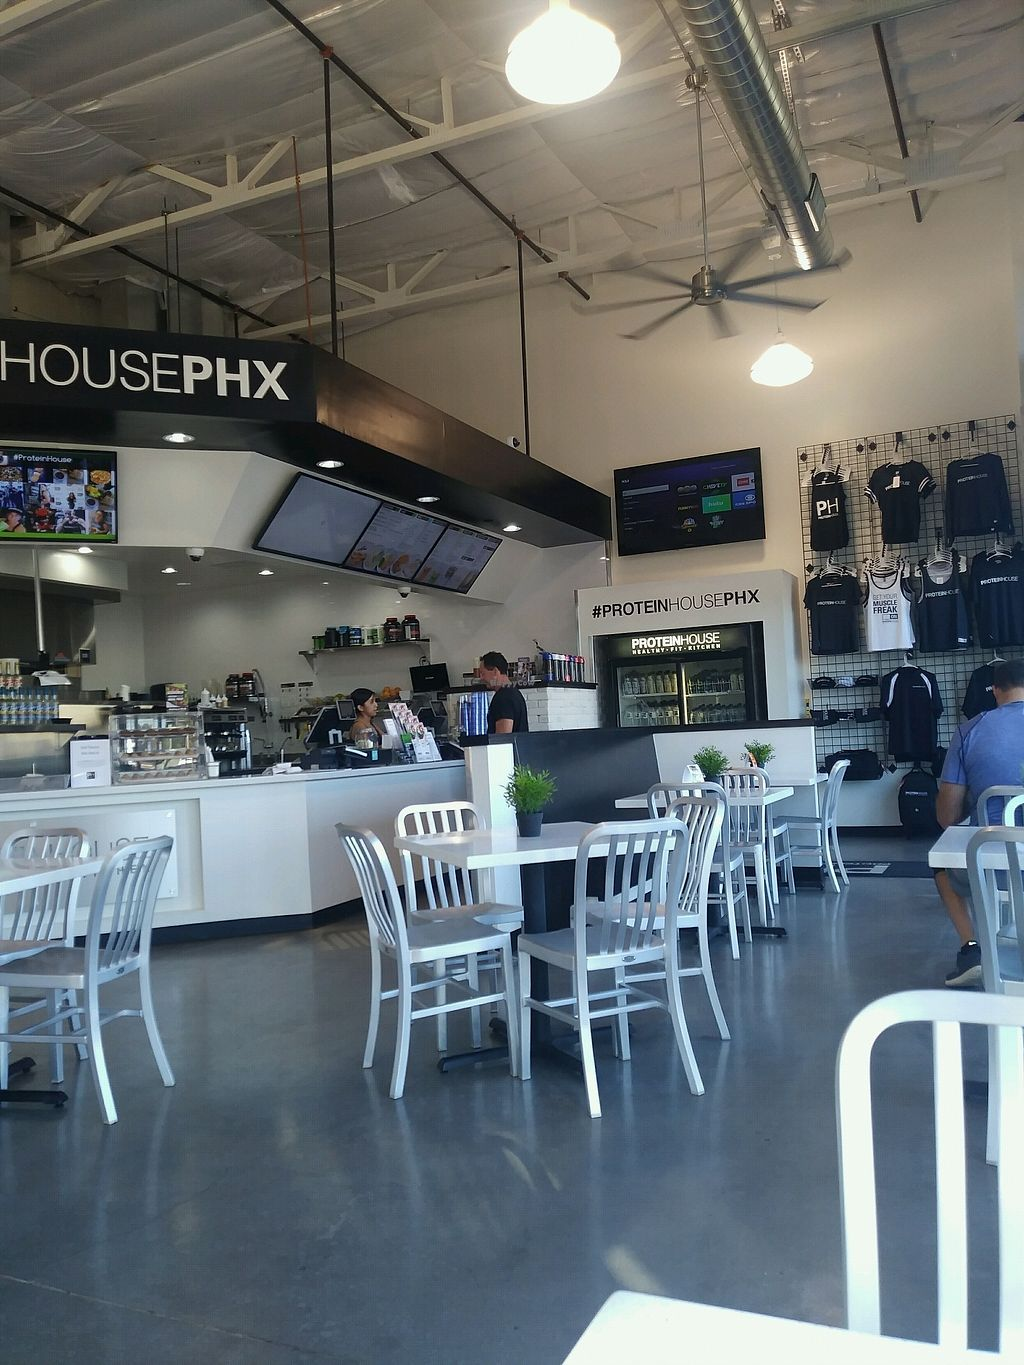 """Photo of ProteinHouse  by <a href=""""/members/profile/chanel39"""">chanel39</a> <br/>Cool place <br/> January 5, 2018  - <a href='/contact/abuse/image/89061/343362'>Report</a>"""